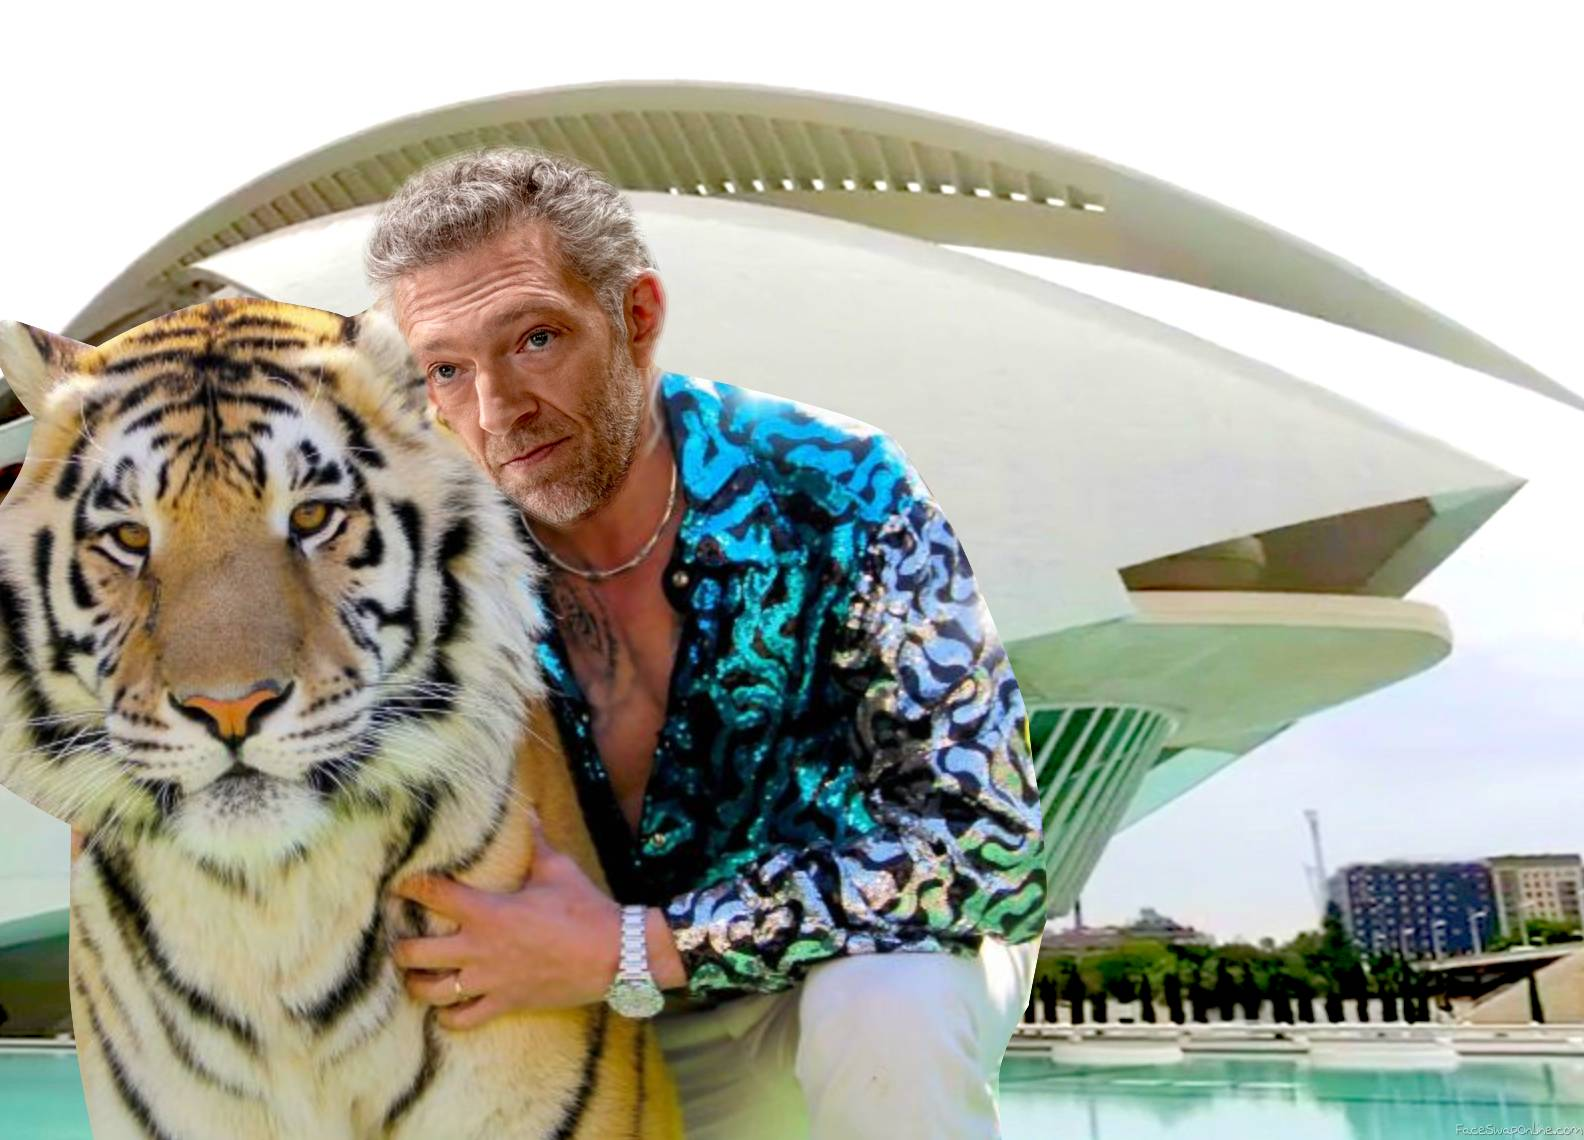 Here's how Tiger King looks like in Westworld Valencia